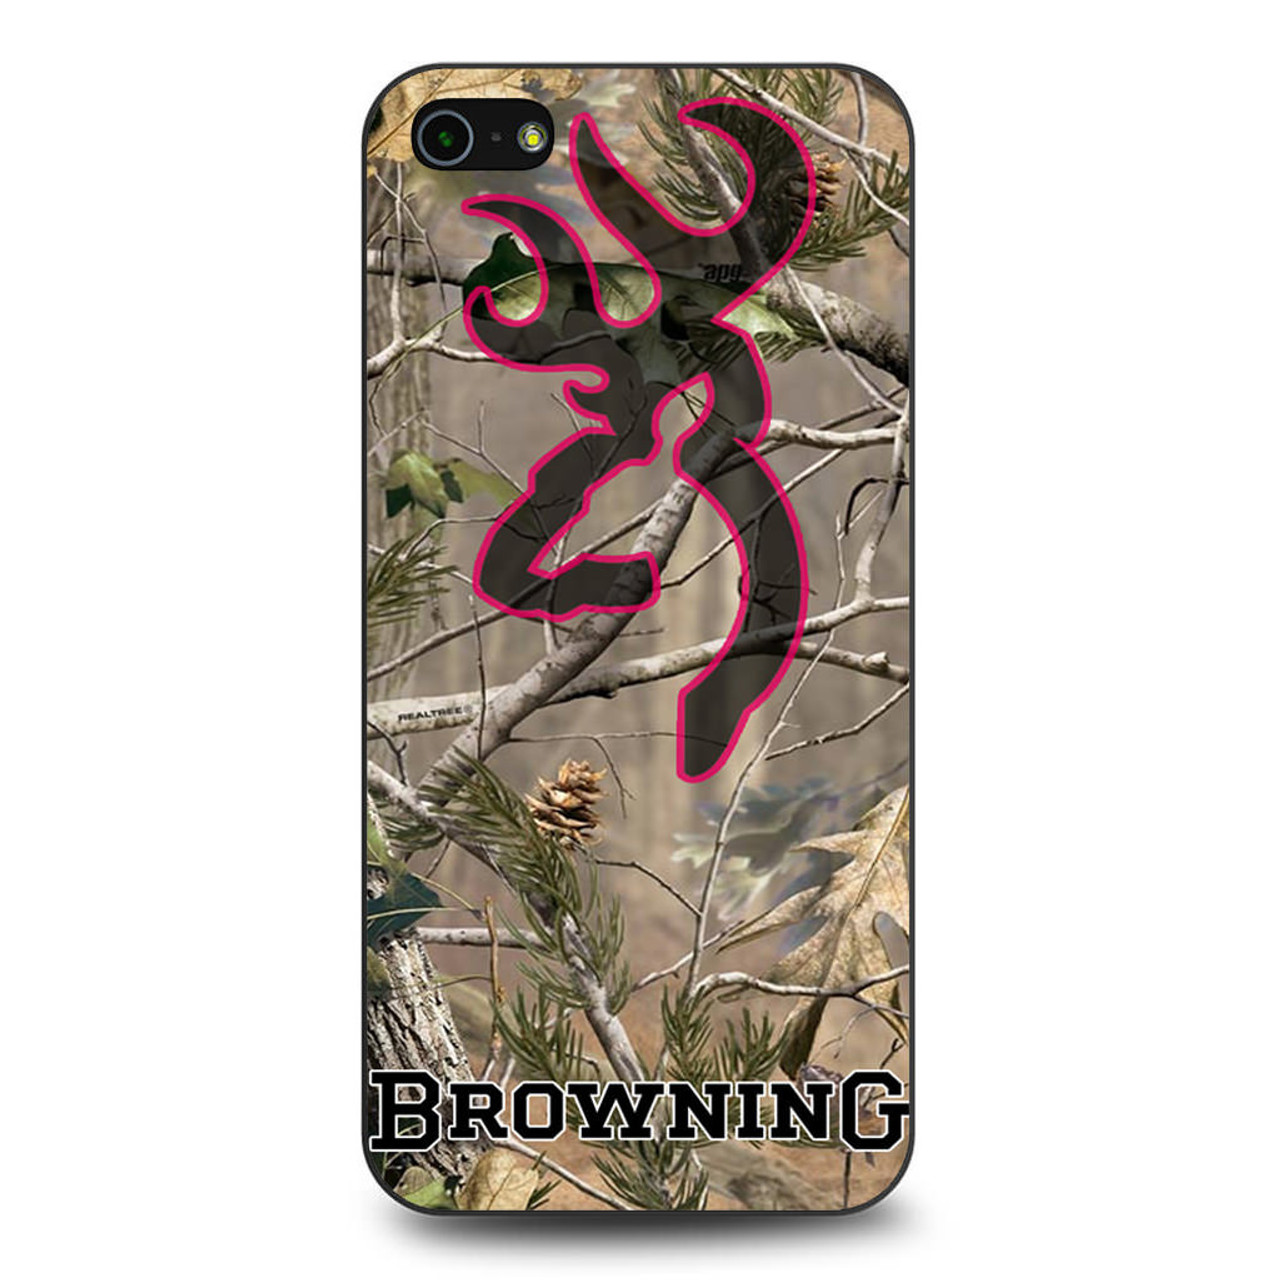 outlet store 5f16e 4672e Browning Deer Camo Browning iPhone 5/5S/SE Case